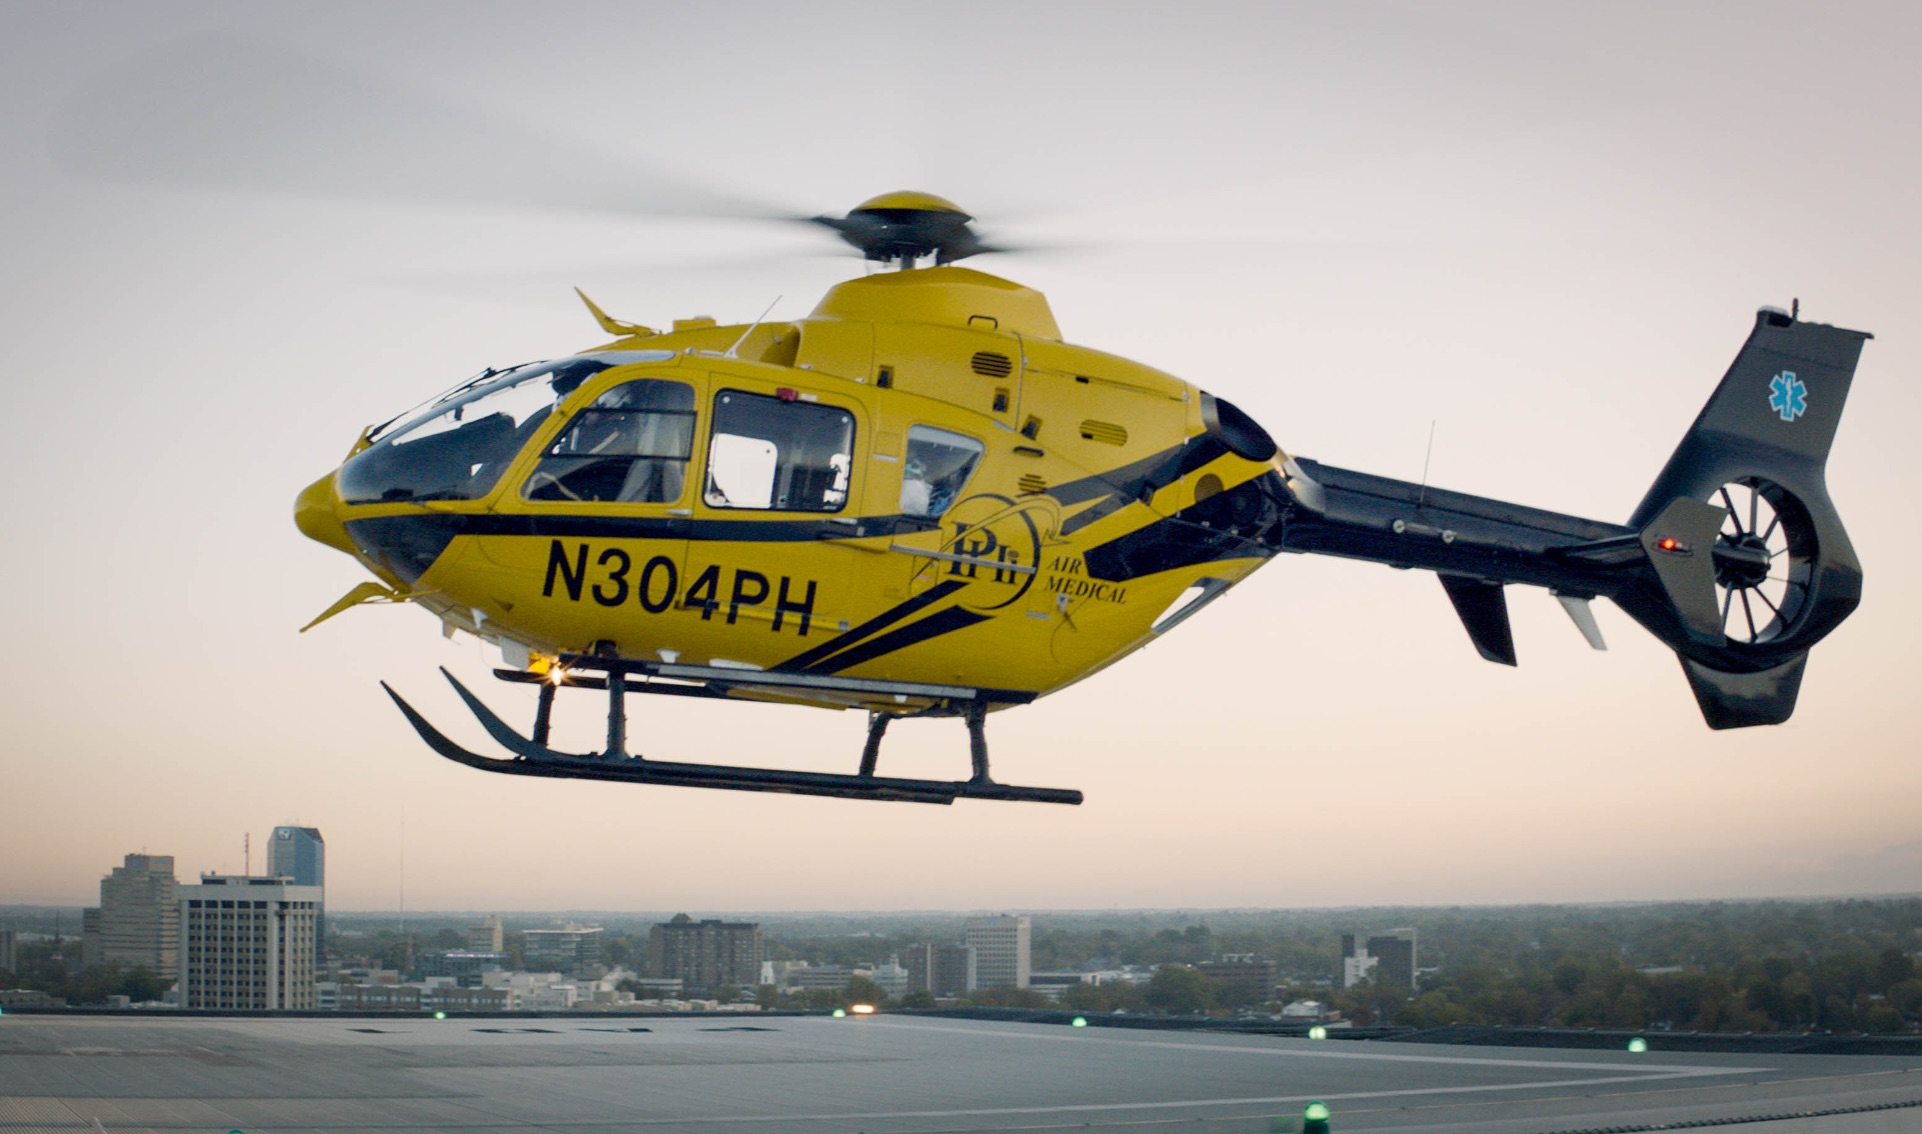 A yellow and black helicopter hovers in the sky, with the Lexington skyline in the background.